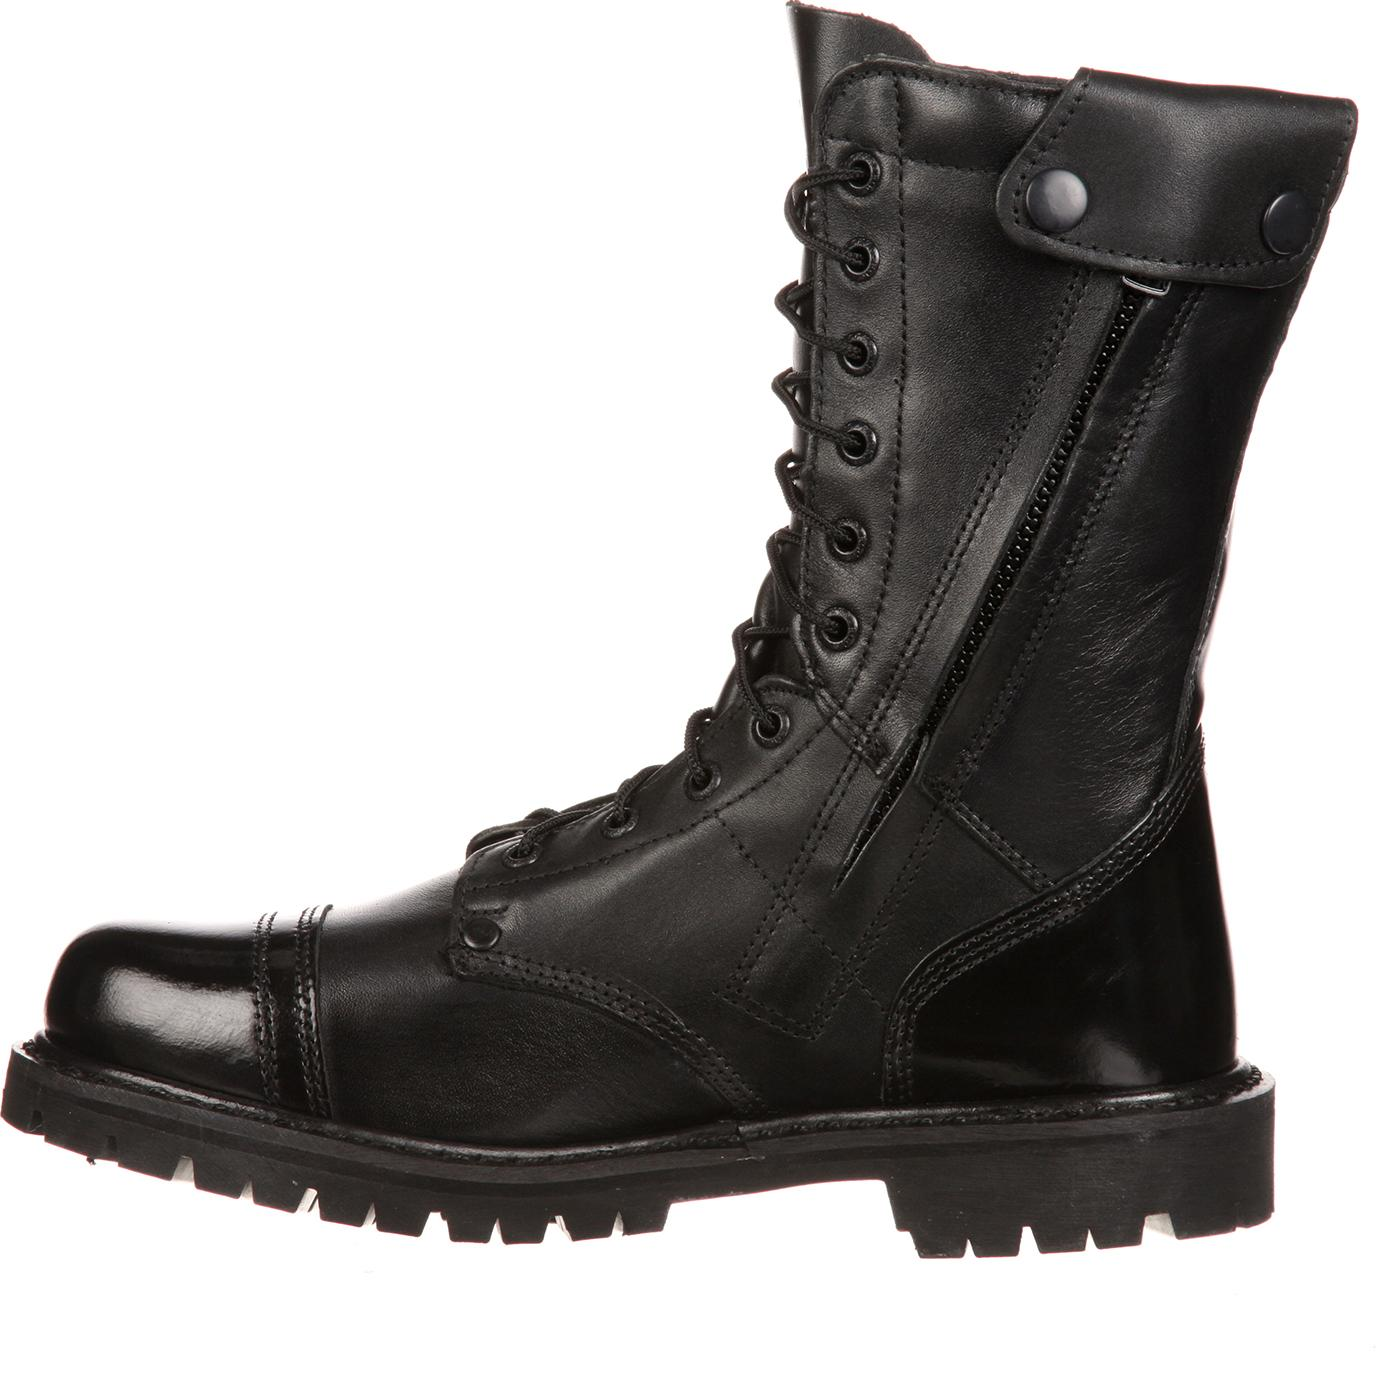 Rocky Duty Boots - Men's Side Zipper Paratrooper Boots